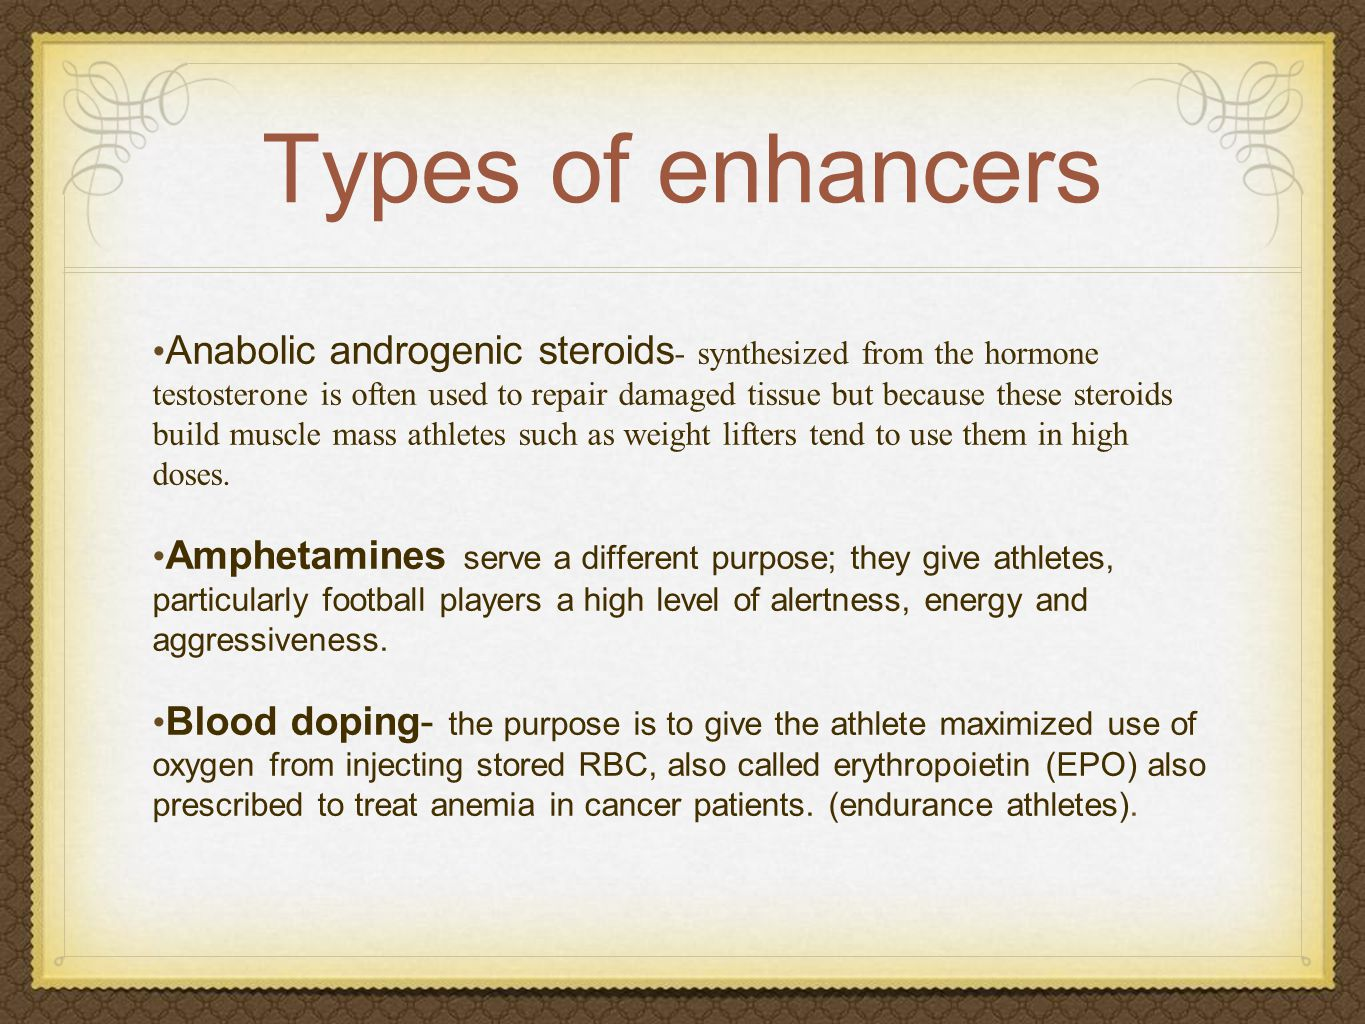 Types of enhancers Anabolic androgenic steroids - synthesized from the hormone testosterone is often used to repair damaged tissue but because these steroids build muscle mass athletes such as weight lifters tend to use them in high doses.